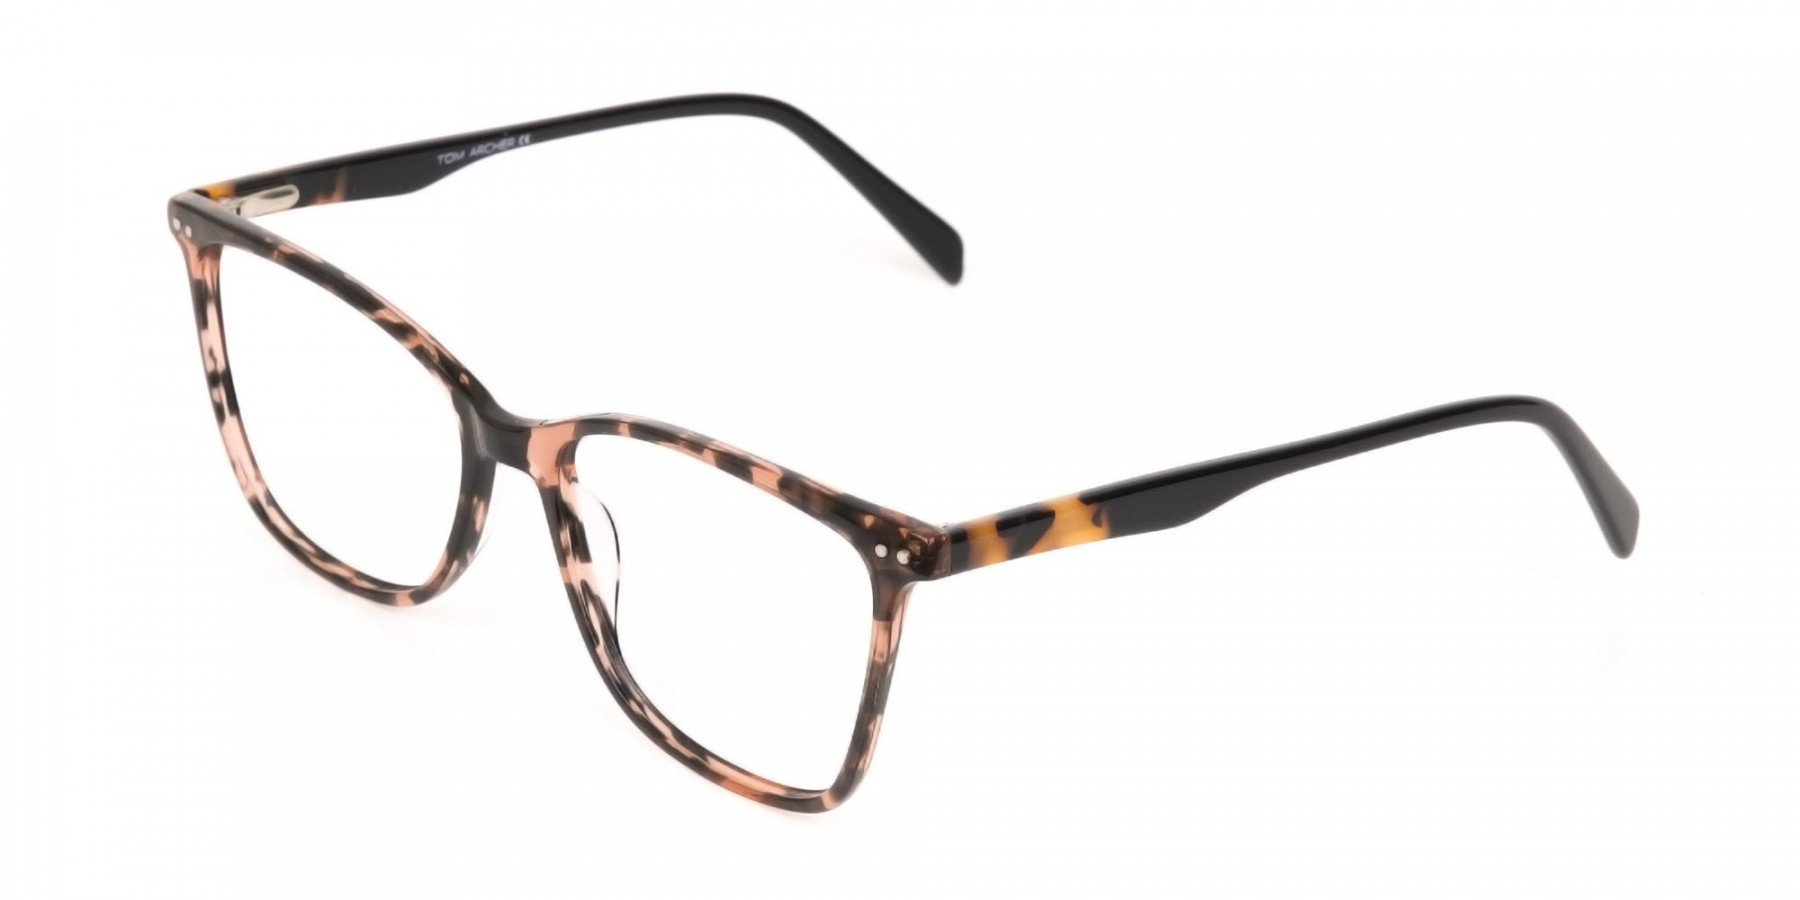 Designer Tortoiseshell Eyeglasses For Women-1